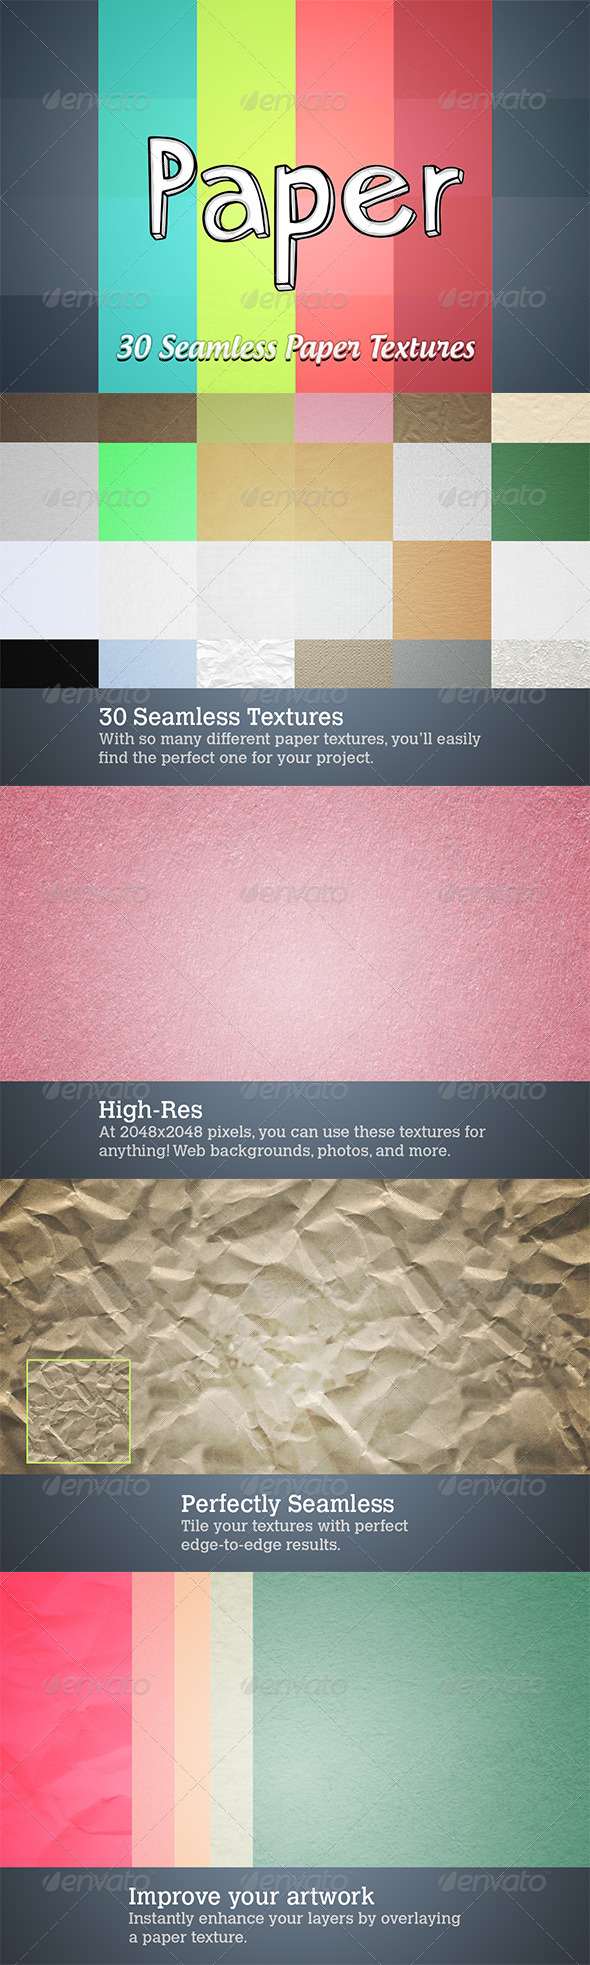 GraphicRiver 30 Seamless Paper Textures 4333429